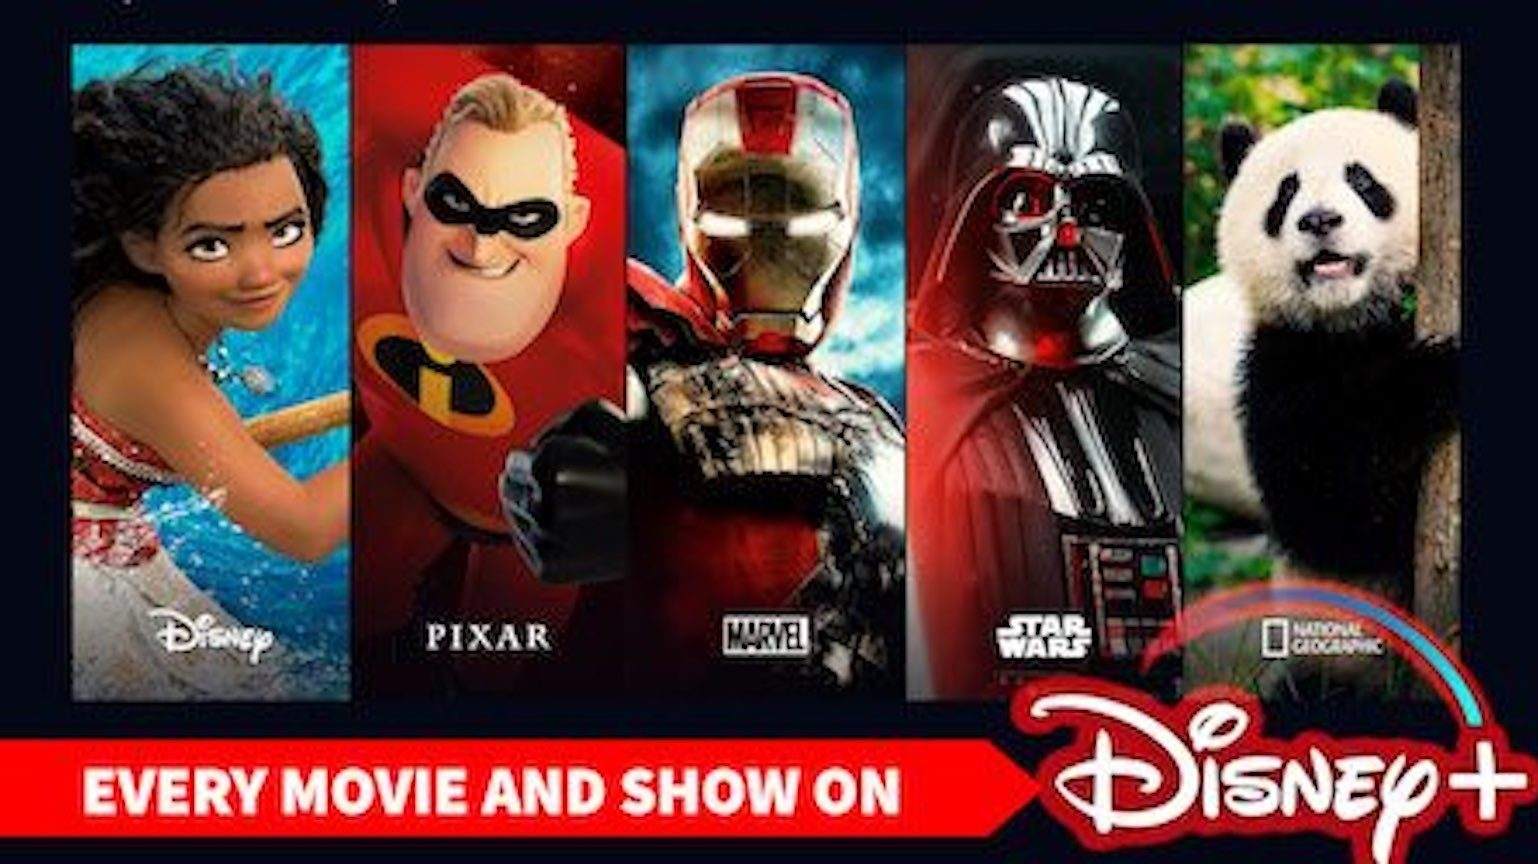 List of Disney+ Movies and Shows